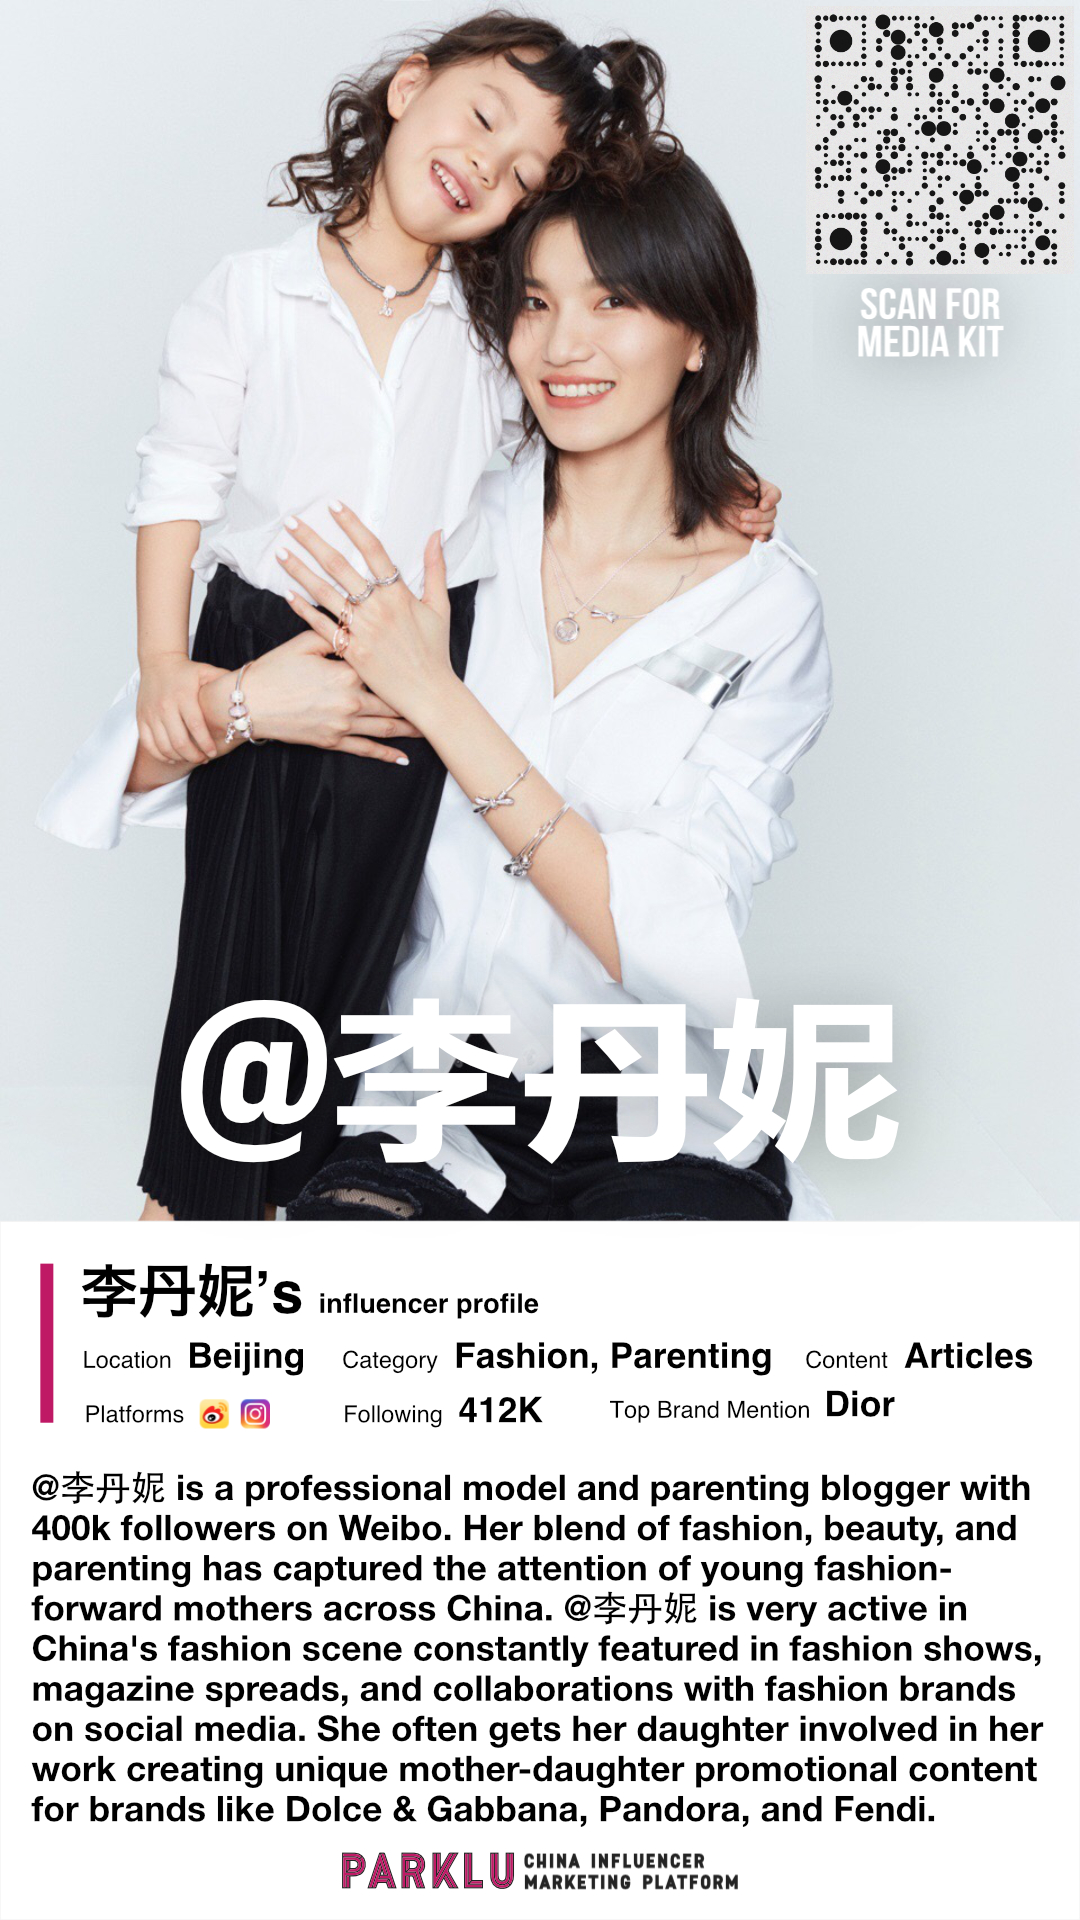 李丹妮 is a Chinese Fashion Model and Parenting Blogger